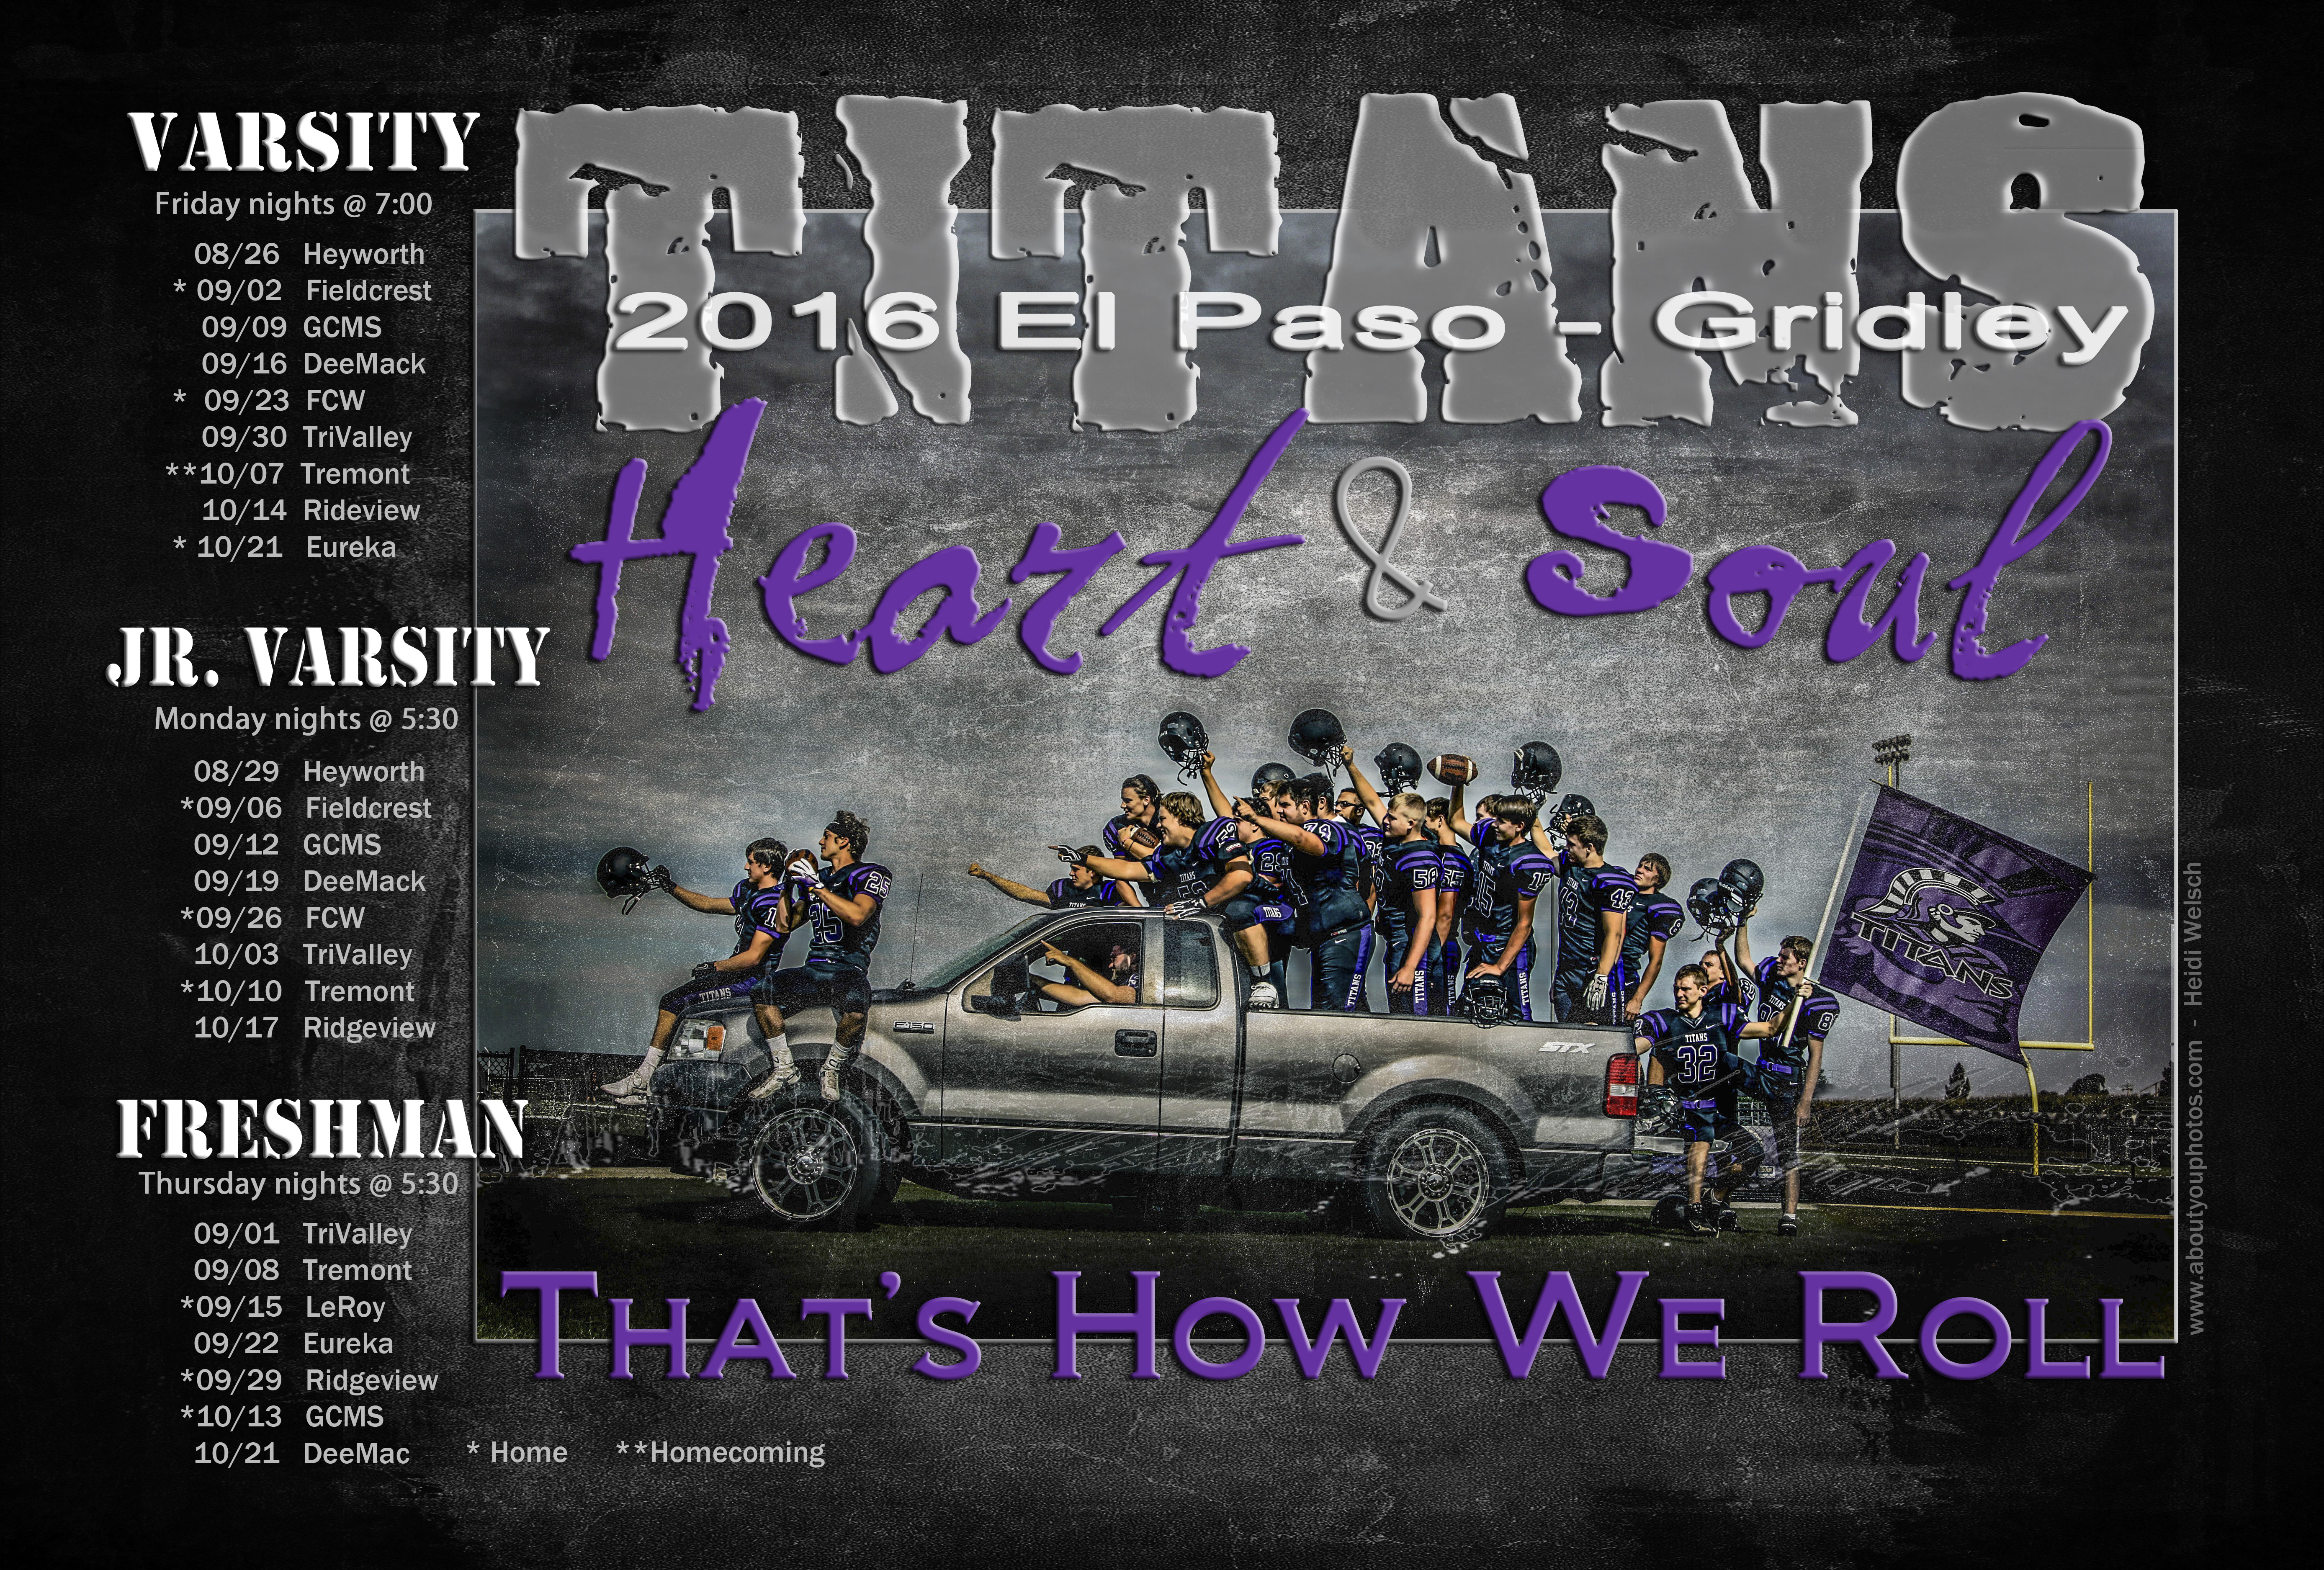 2016 EPG - Football schedule poster